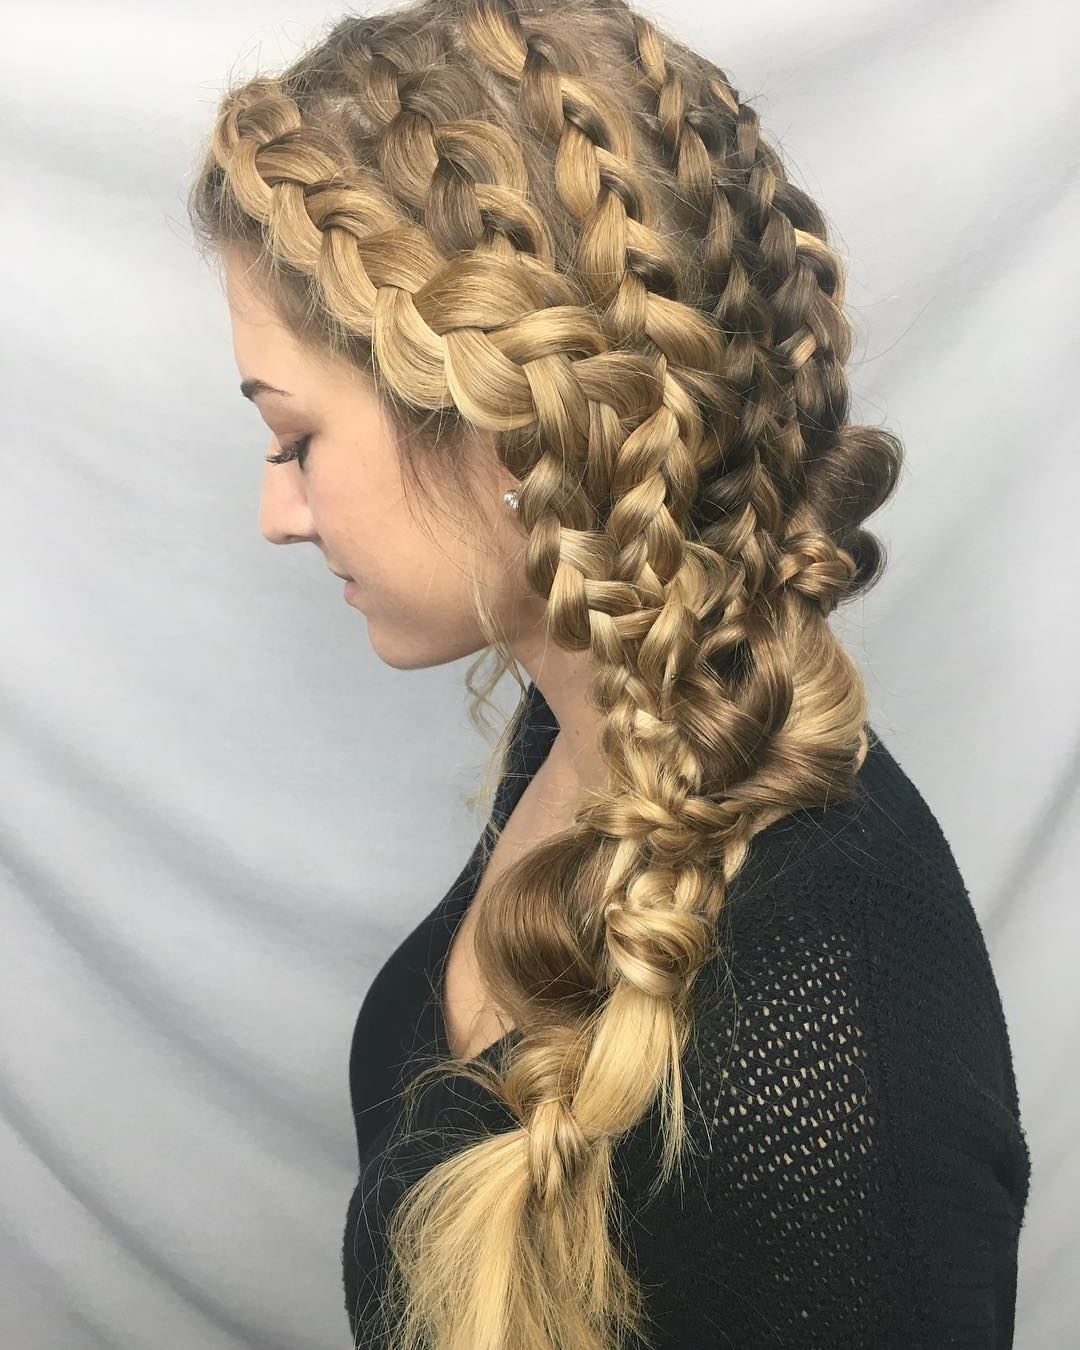 Famous Halo Braided Hairstyles With Long Tendrils For 60 Best Braids, Braid Styles, Braided Hairstyles For Women (View 5 of 20)